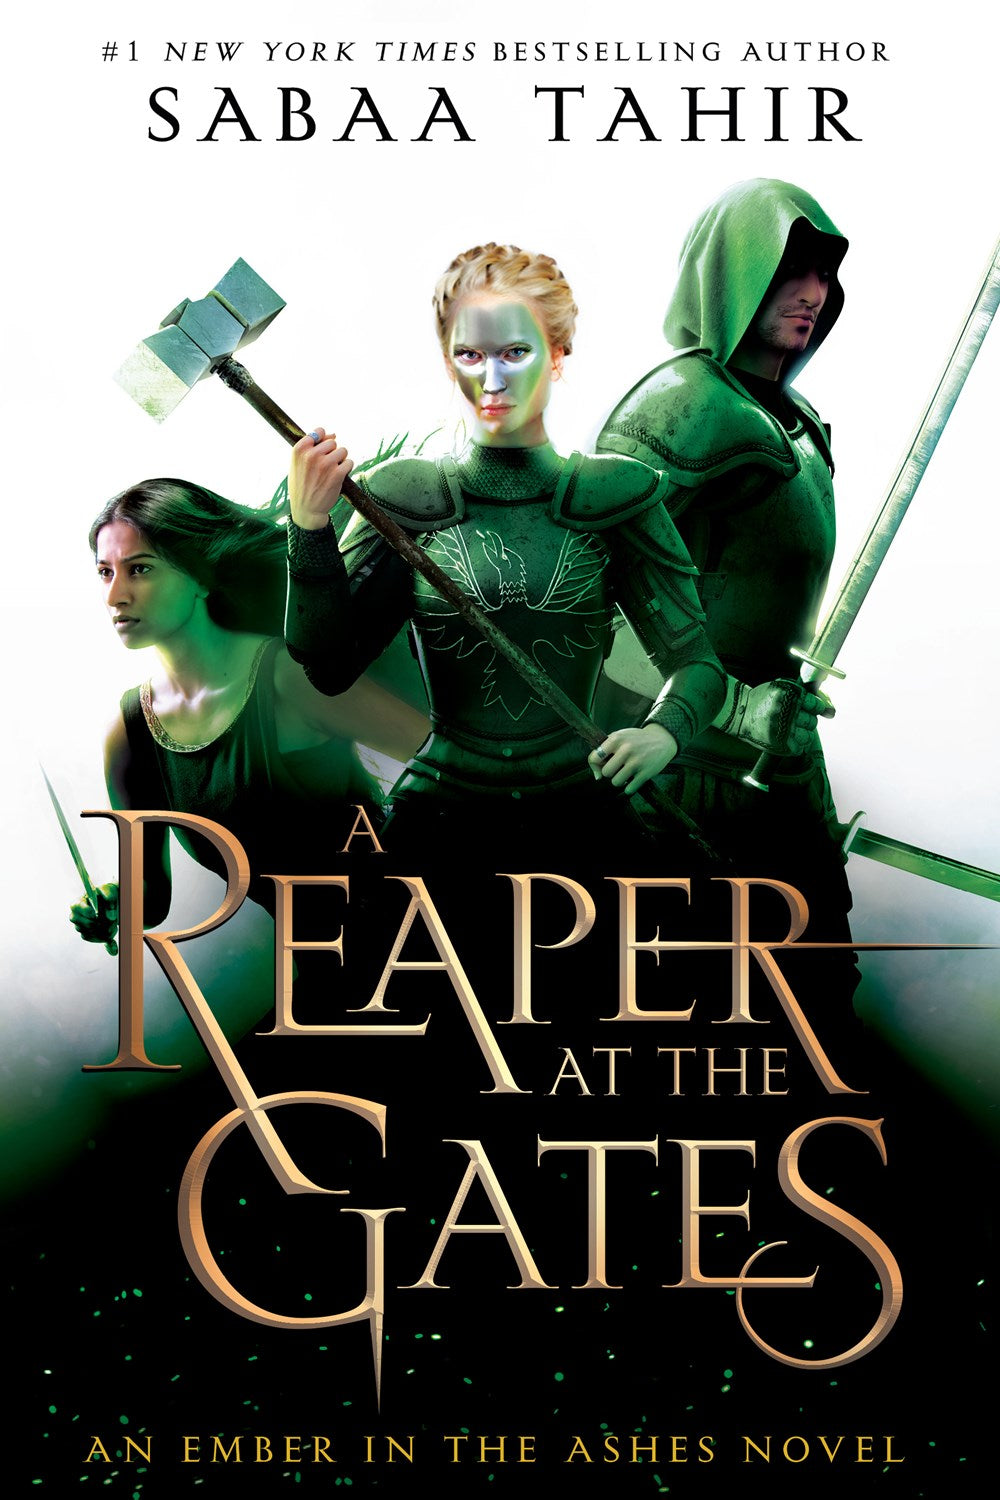 A Reaper at the Gates (Ember in the Ashes #3)